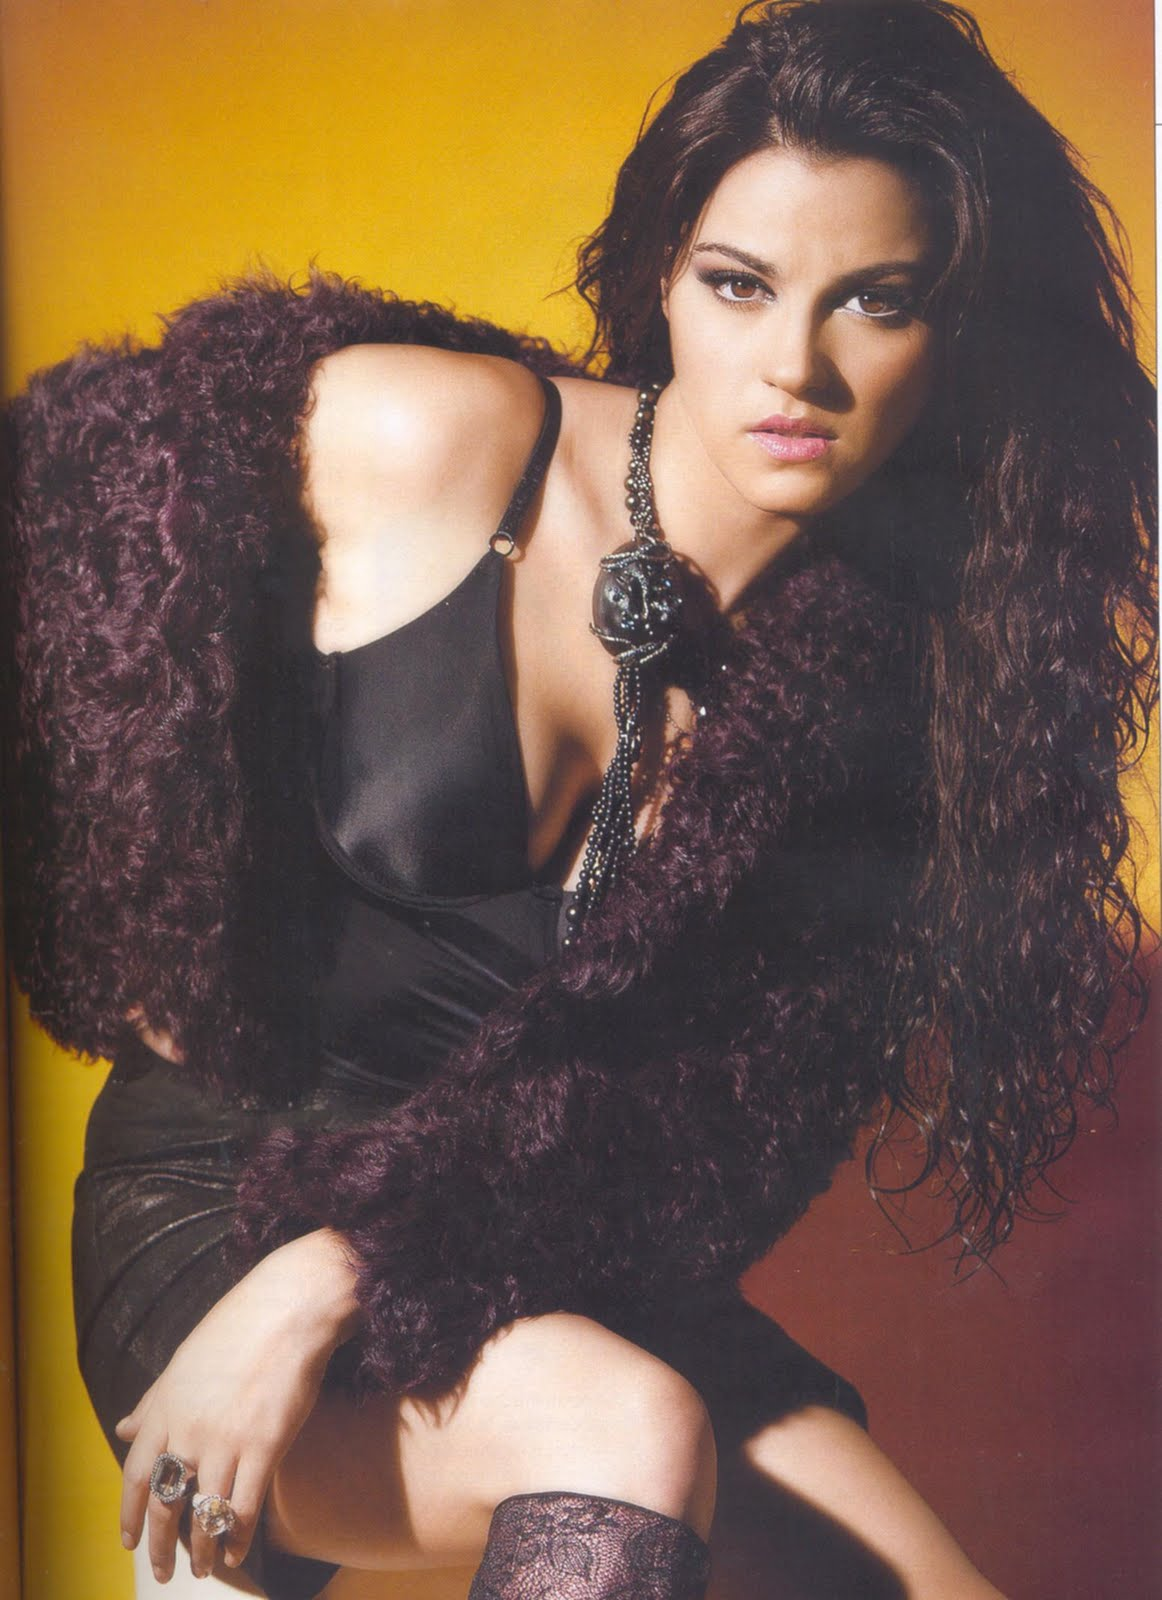 Facts About Maite Perroni http://dating.download-now.net.ua/who-is-maite-perroni-dating-2013.html